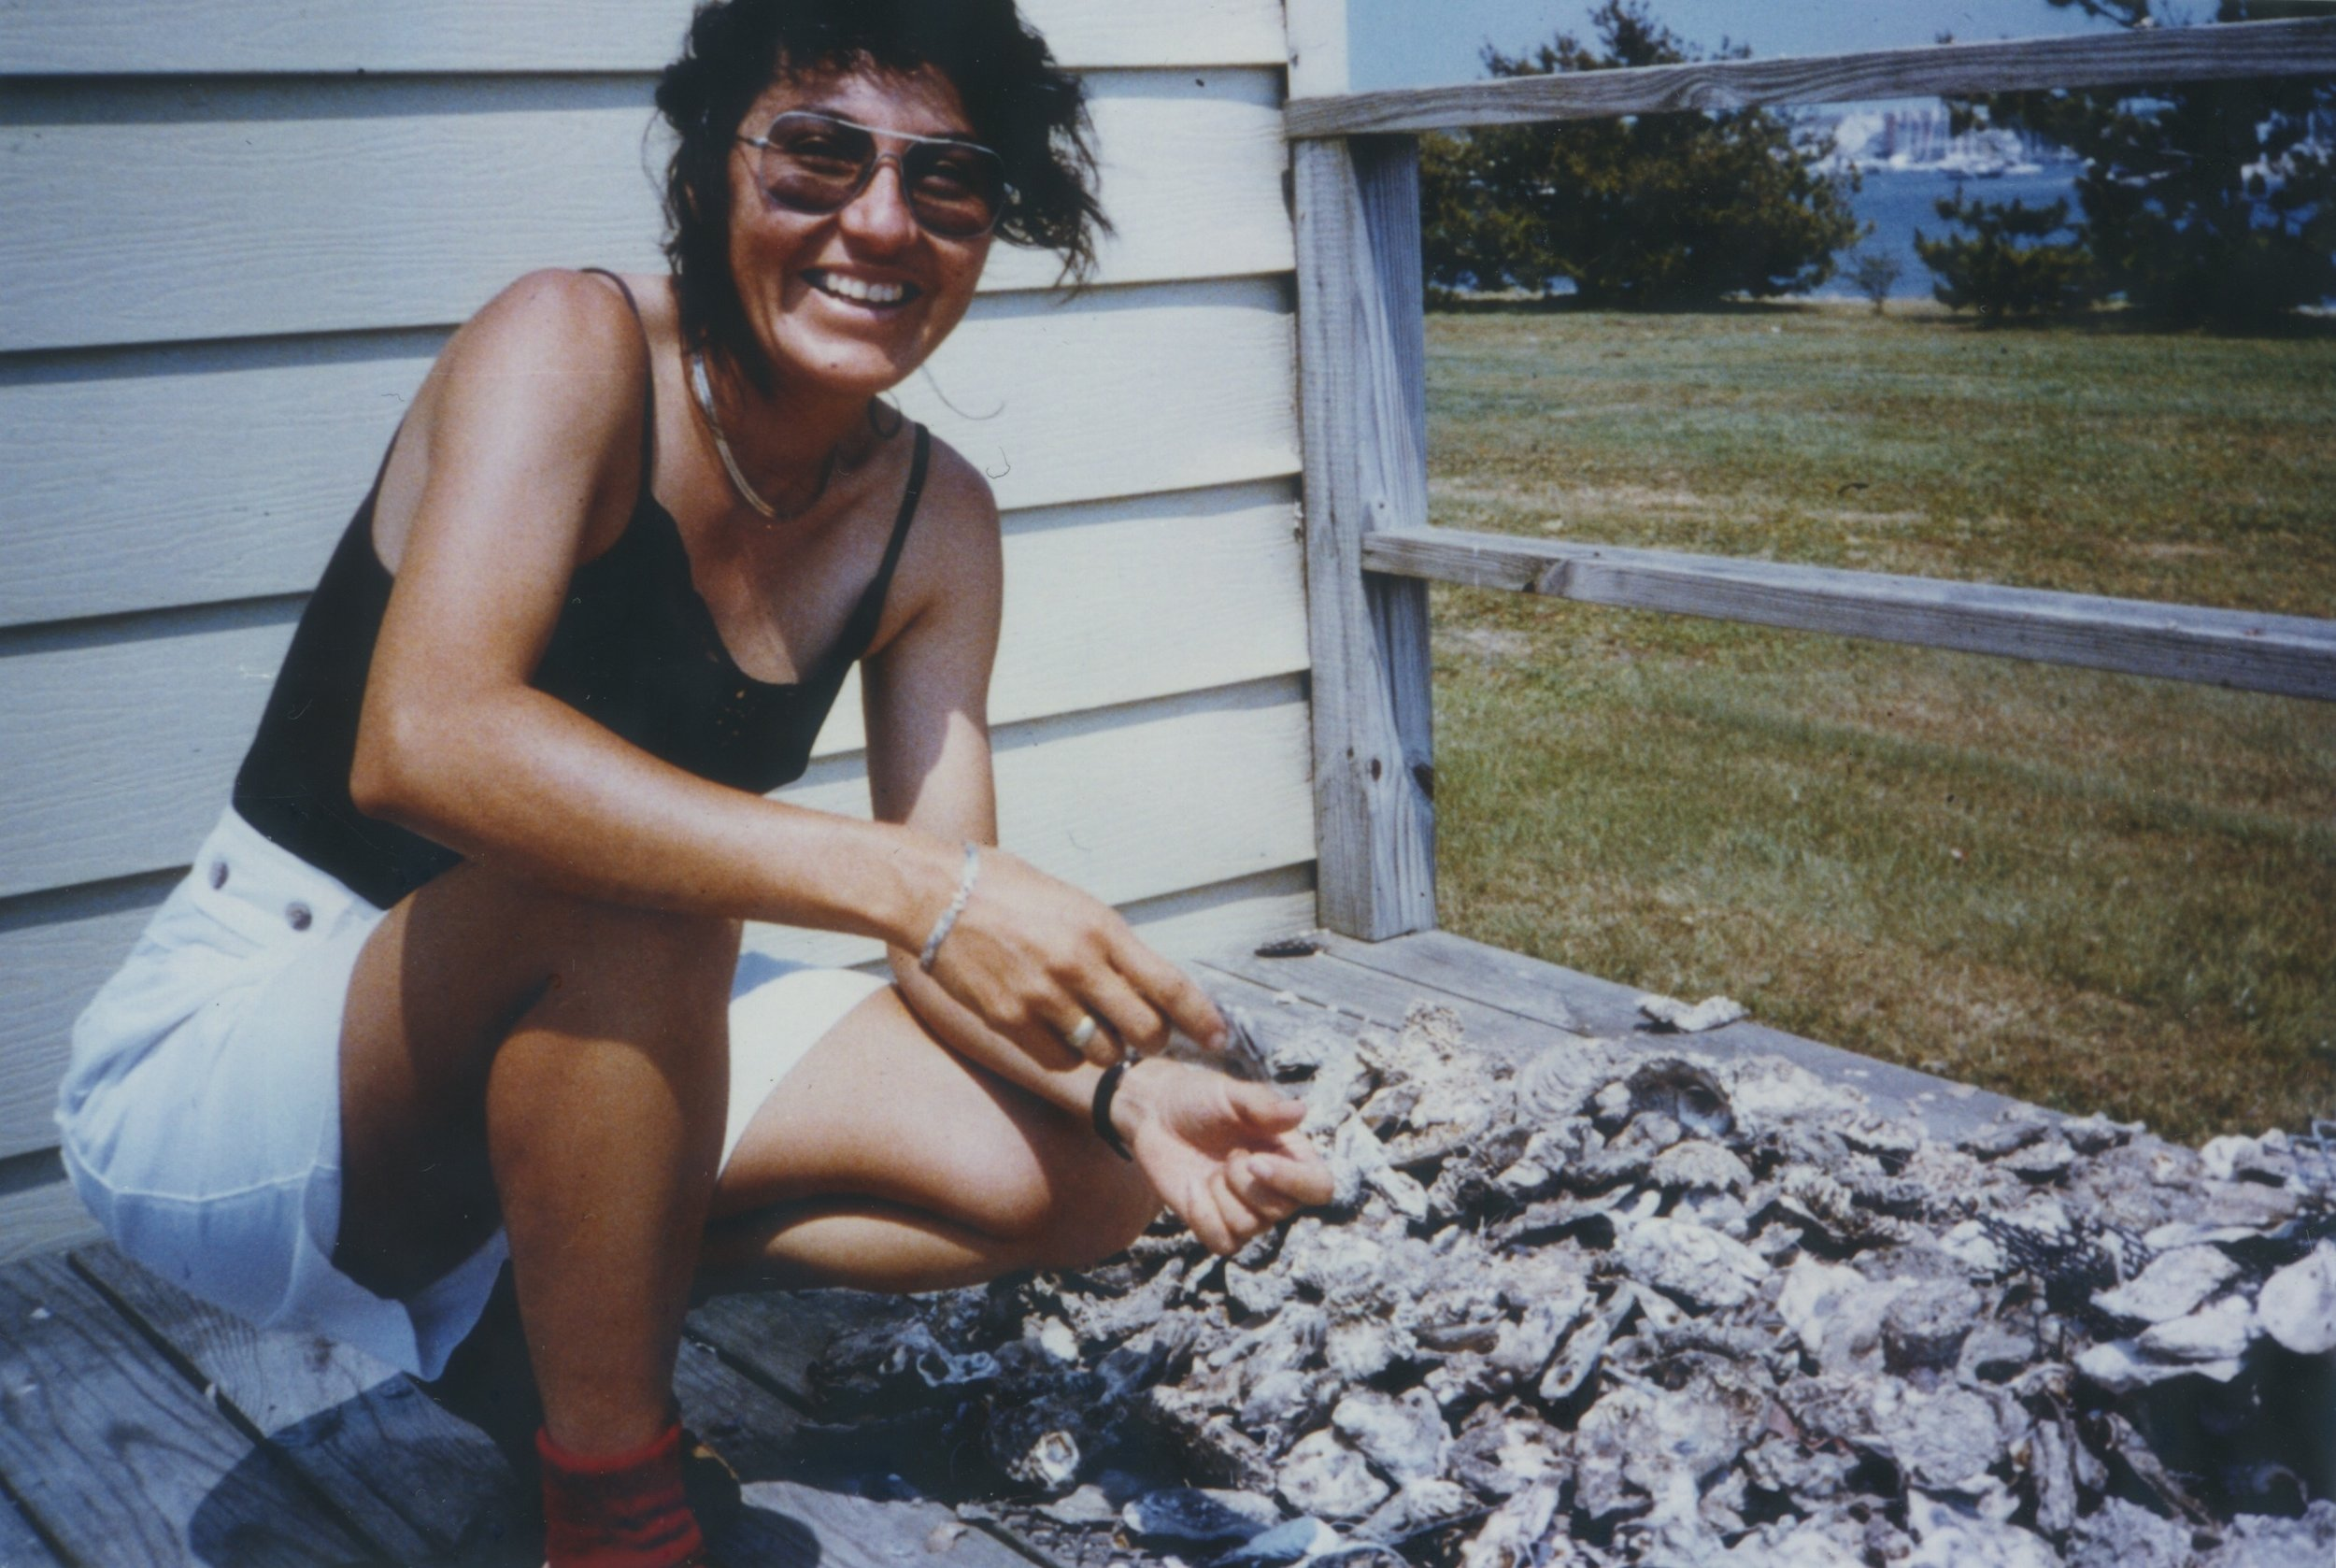 Sonia in 1987, at Duke Marine Lab, selecting oyster shells to use in her experiments